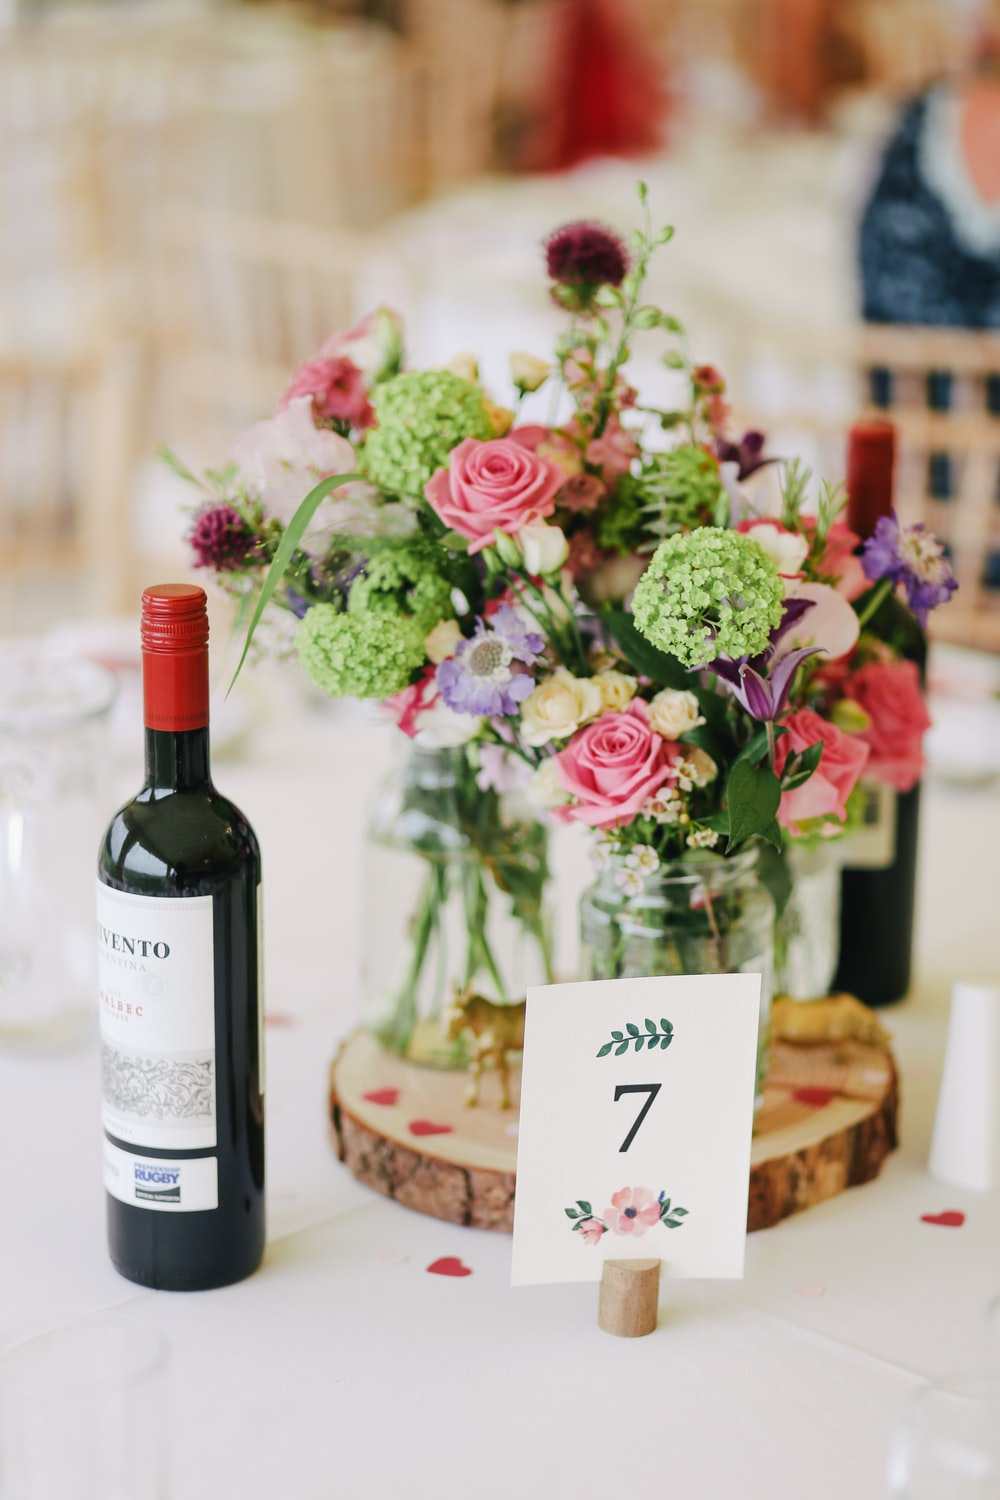 flower arrangement with wine bottle on the table